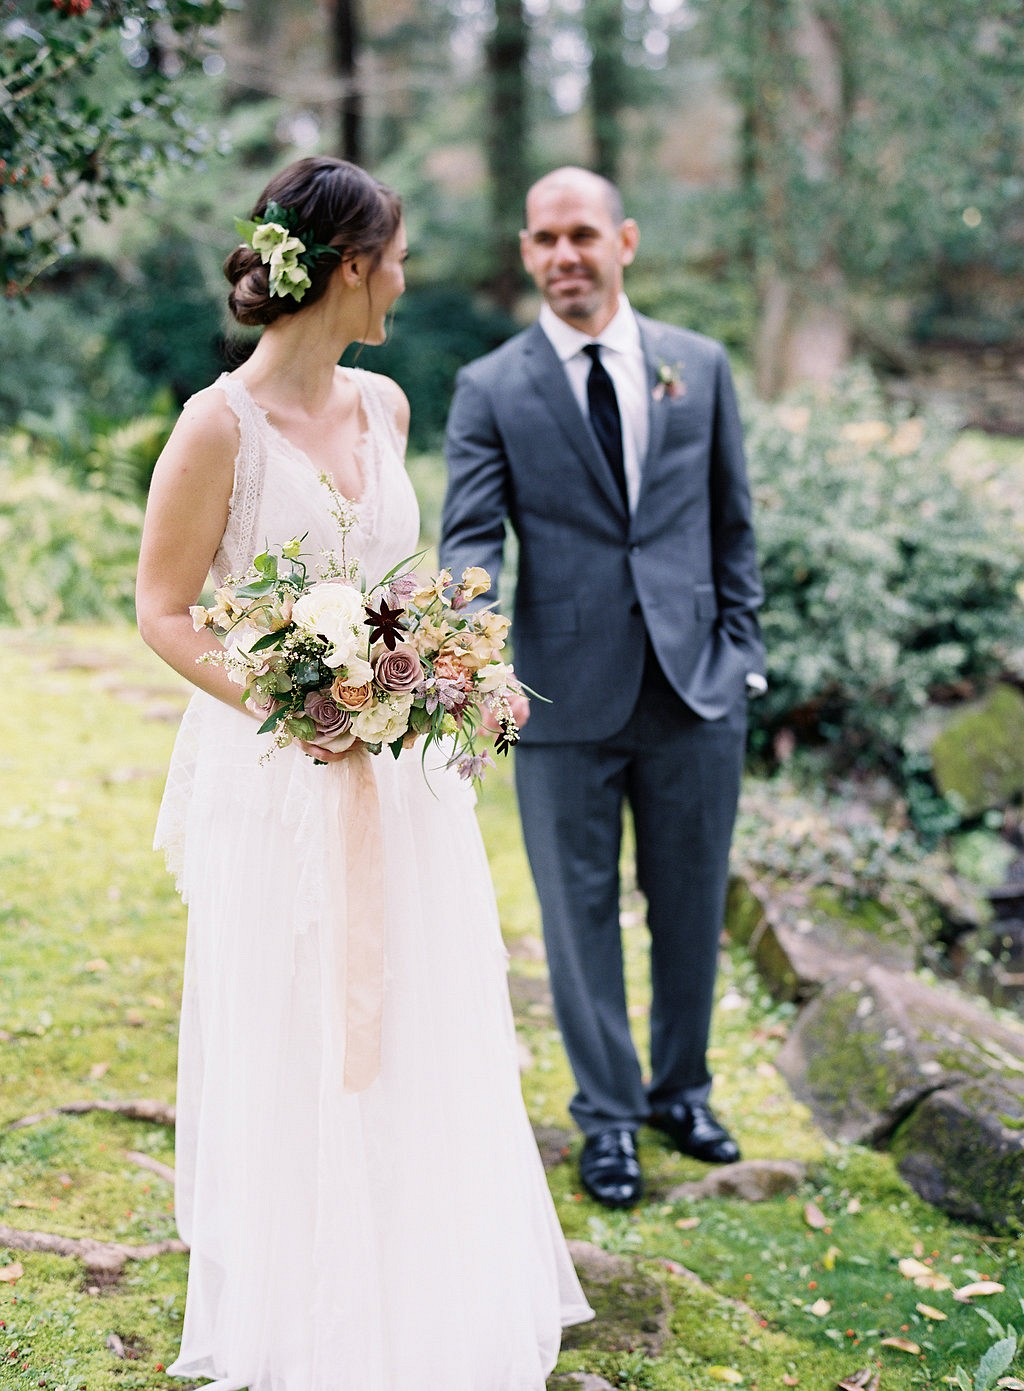 Hannah and Matt's Intimate Garden Wedding at Serenbe